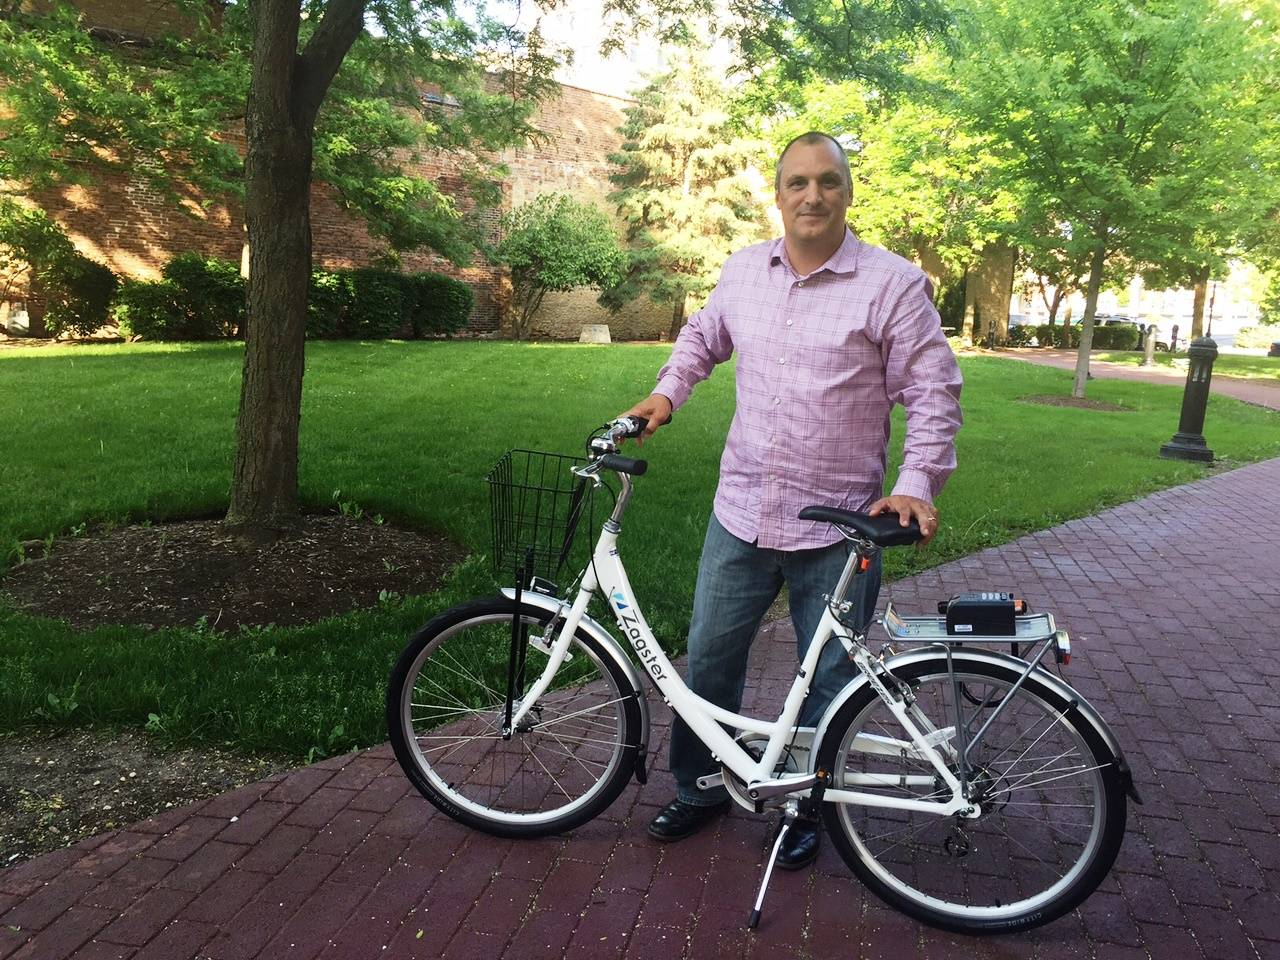 Eric Gallt, Aurora's traffic engineer, shows an example of the rental bikes that will be available next month at three downtown stations.